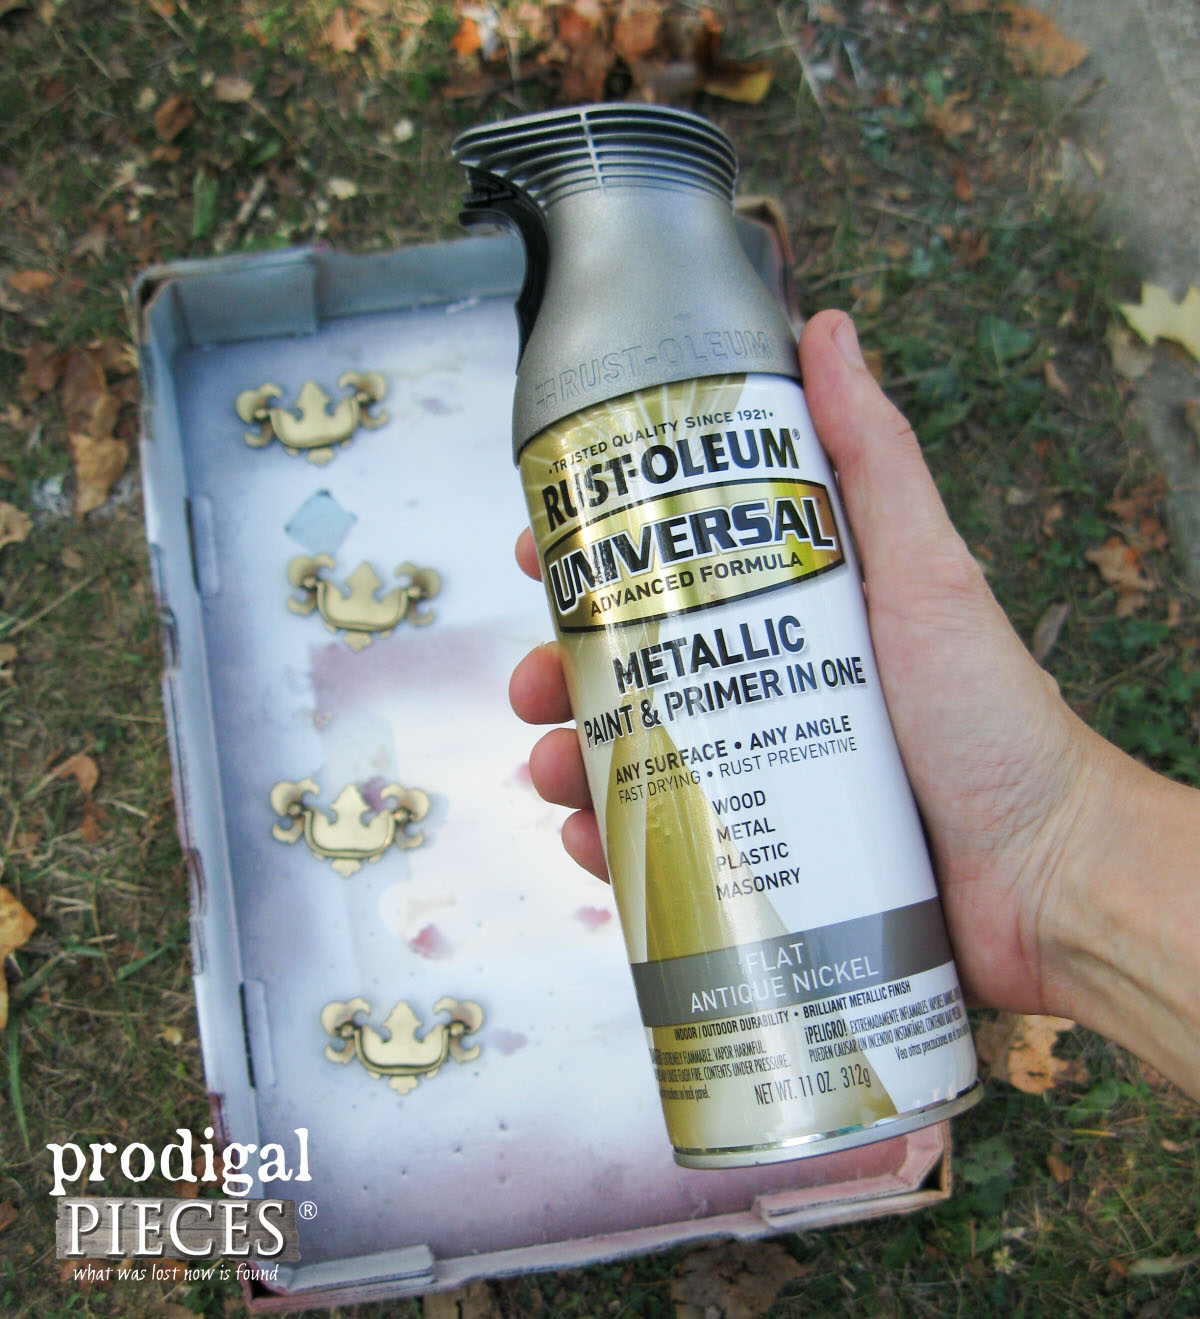 Antique Nickel Spray Paint for Nightstand Pulls | Prodigal Pieces | prodigalpieces.com